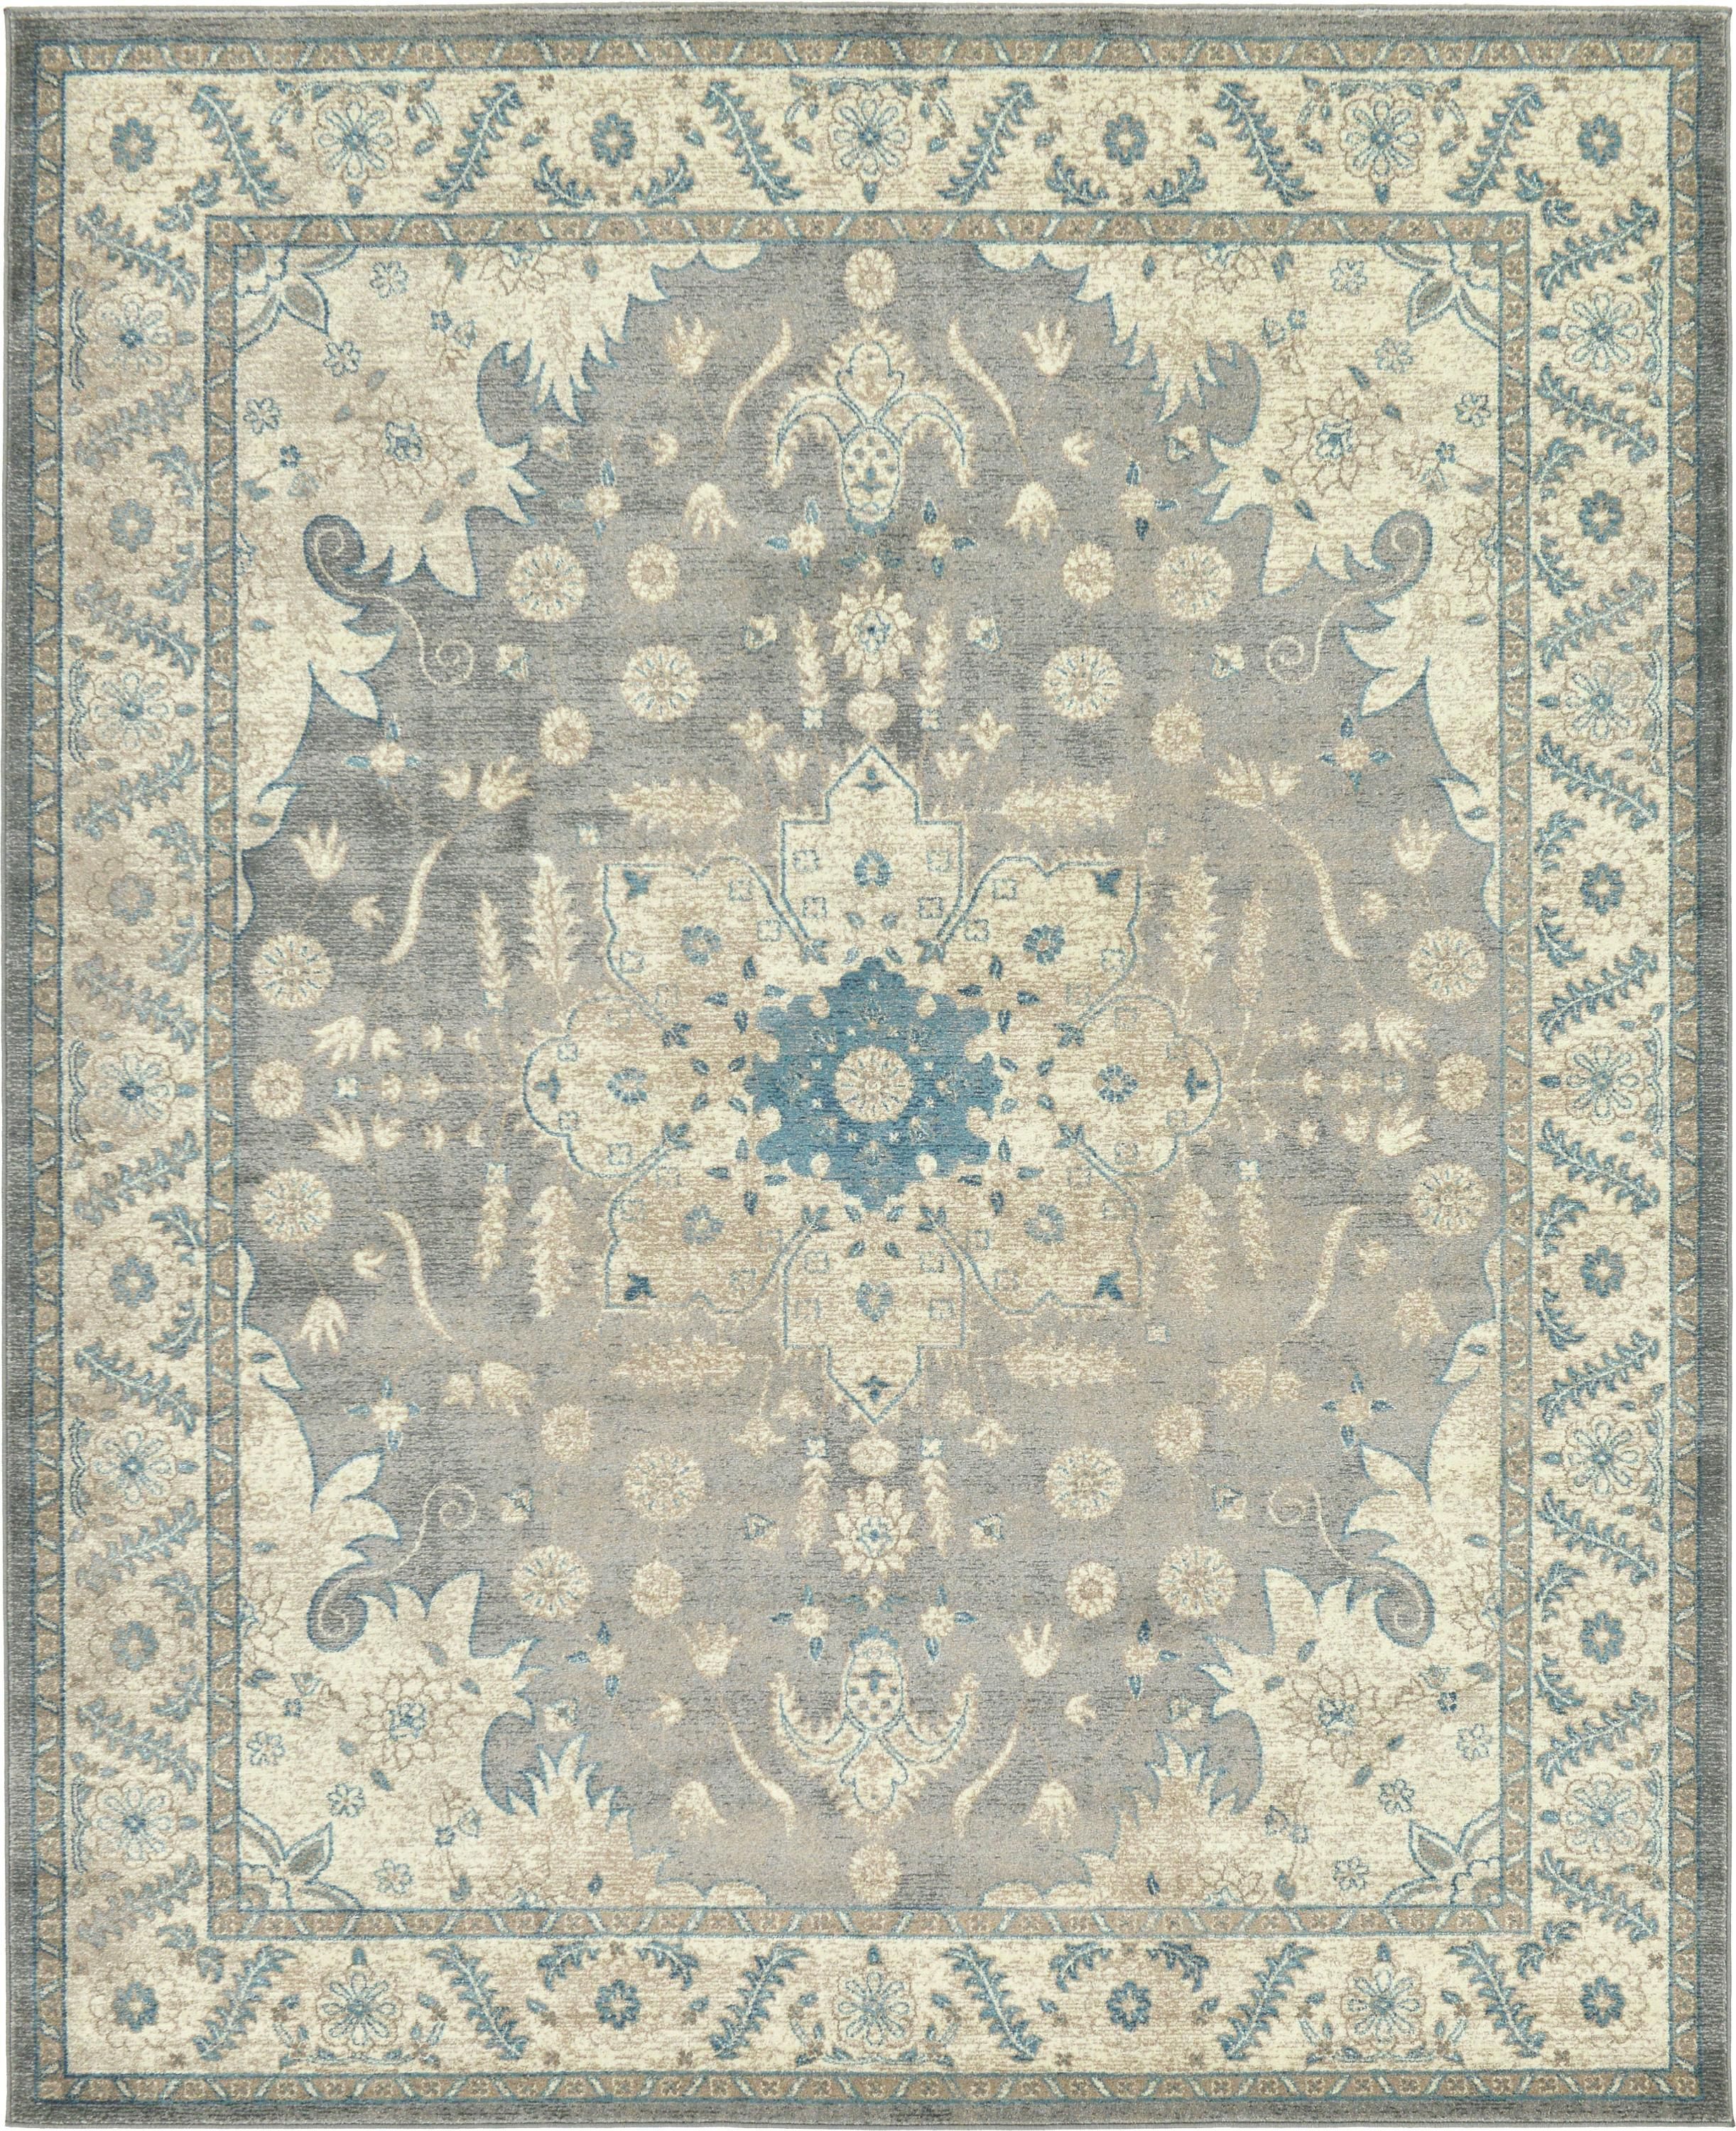 Gray 8 X 10 Vienna Rug Ad Gray Rug Vienna Sponsored Area Rugs Grey Area Rug Square Rugs